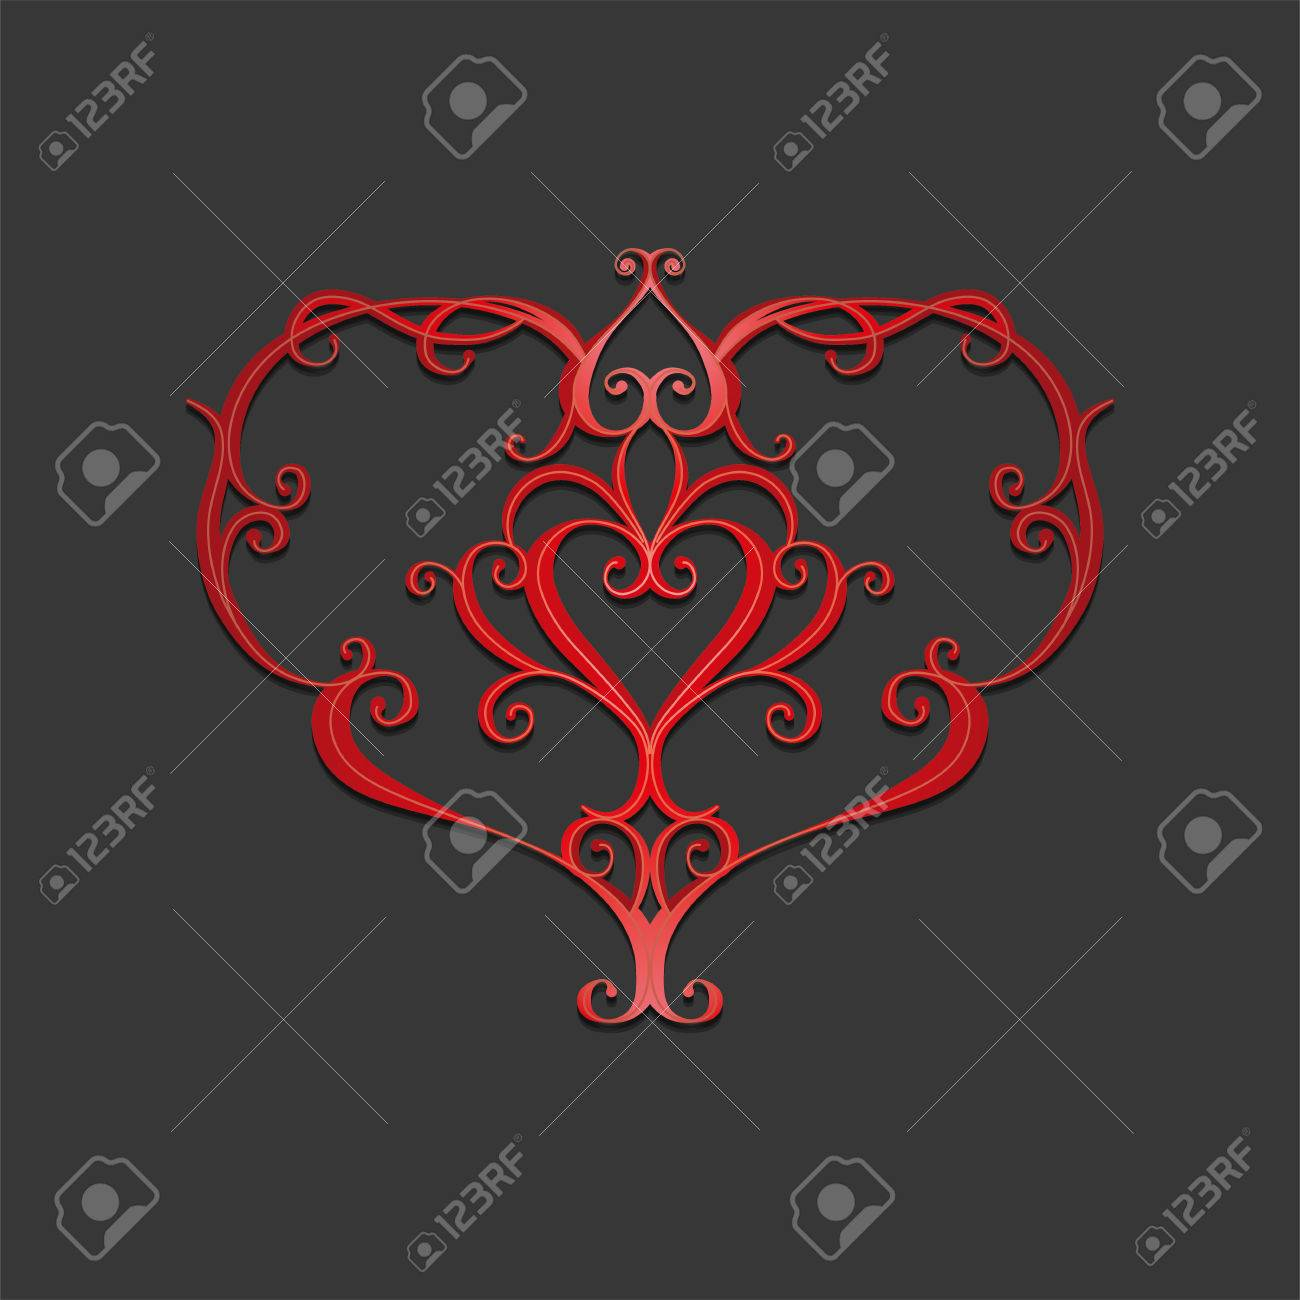 Beautiful fine element for greeting cards or wedding invintations beautiful fine element for greeting cards or wedding invintations stock photo 57551163 m4hsunfo